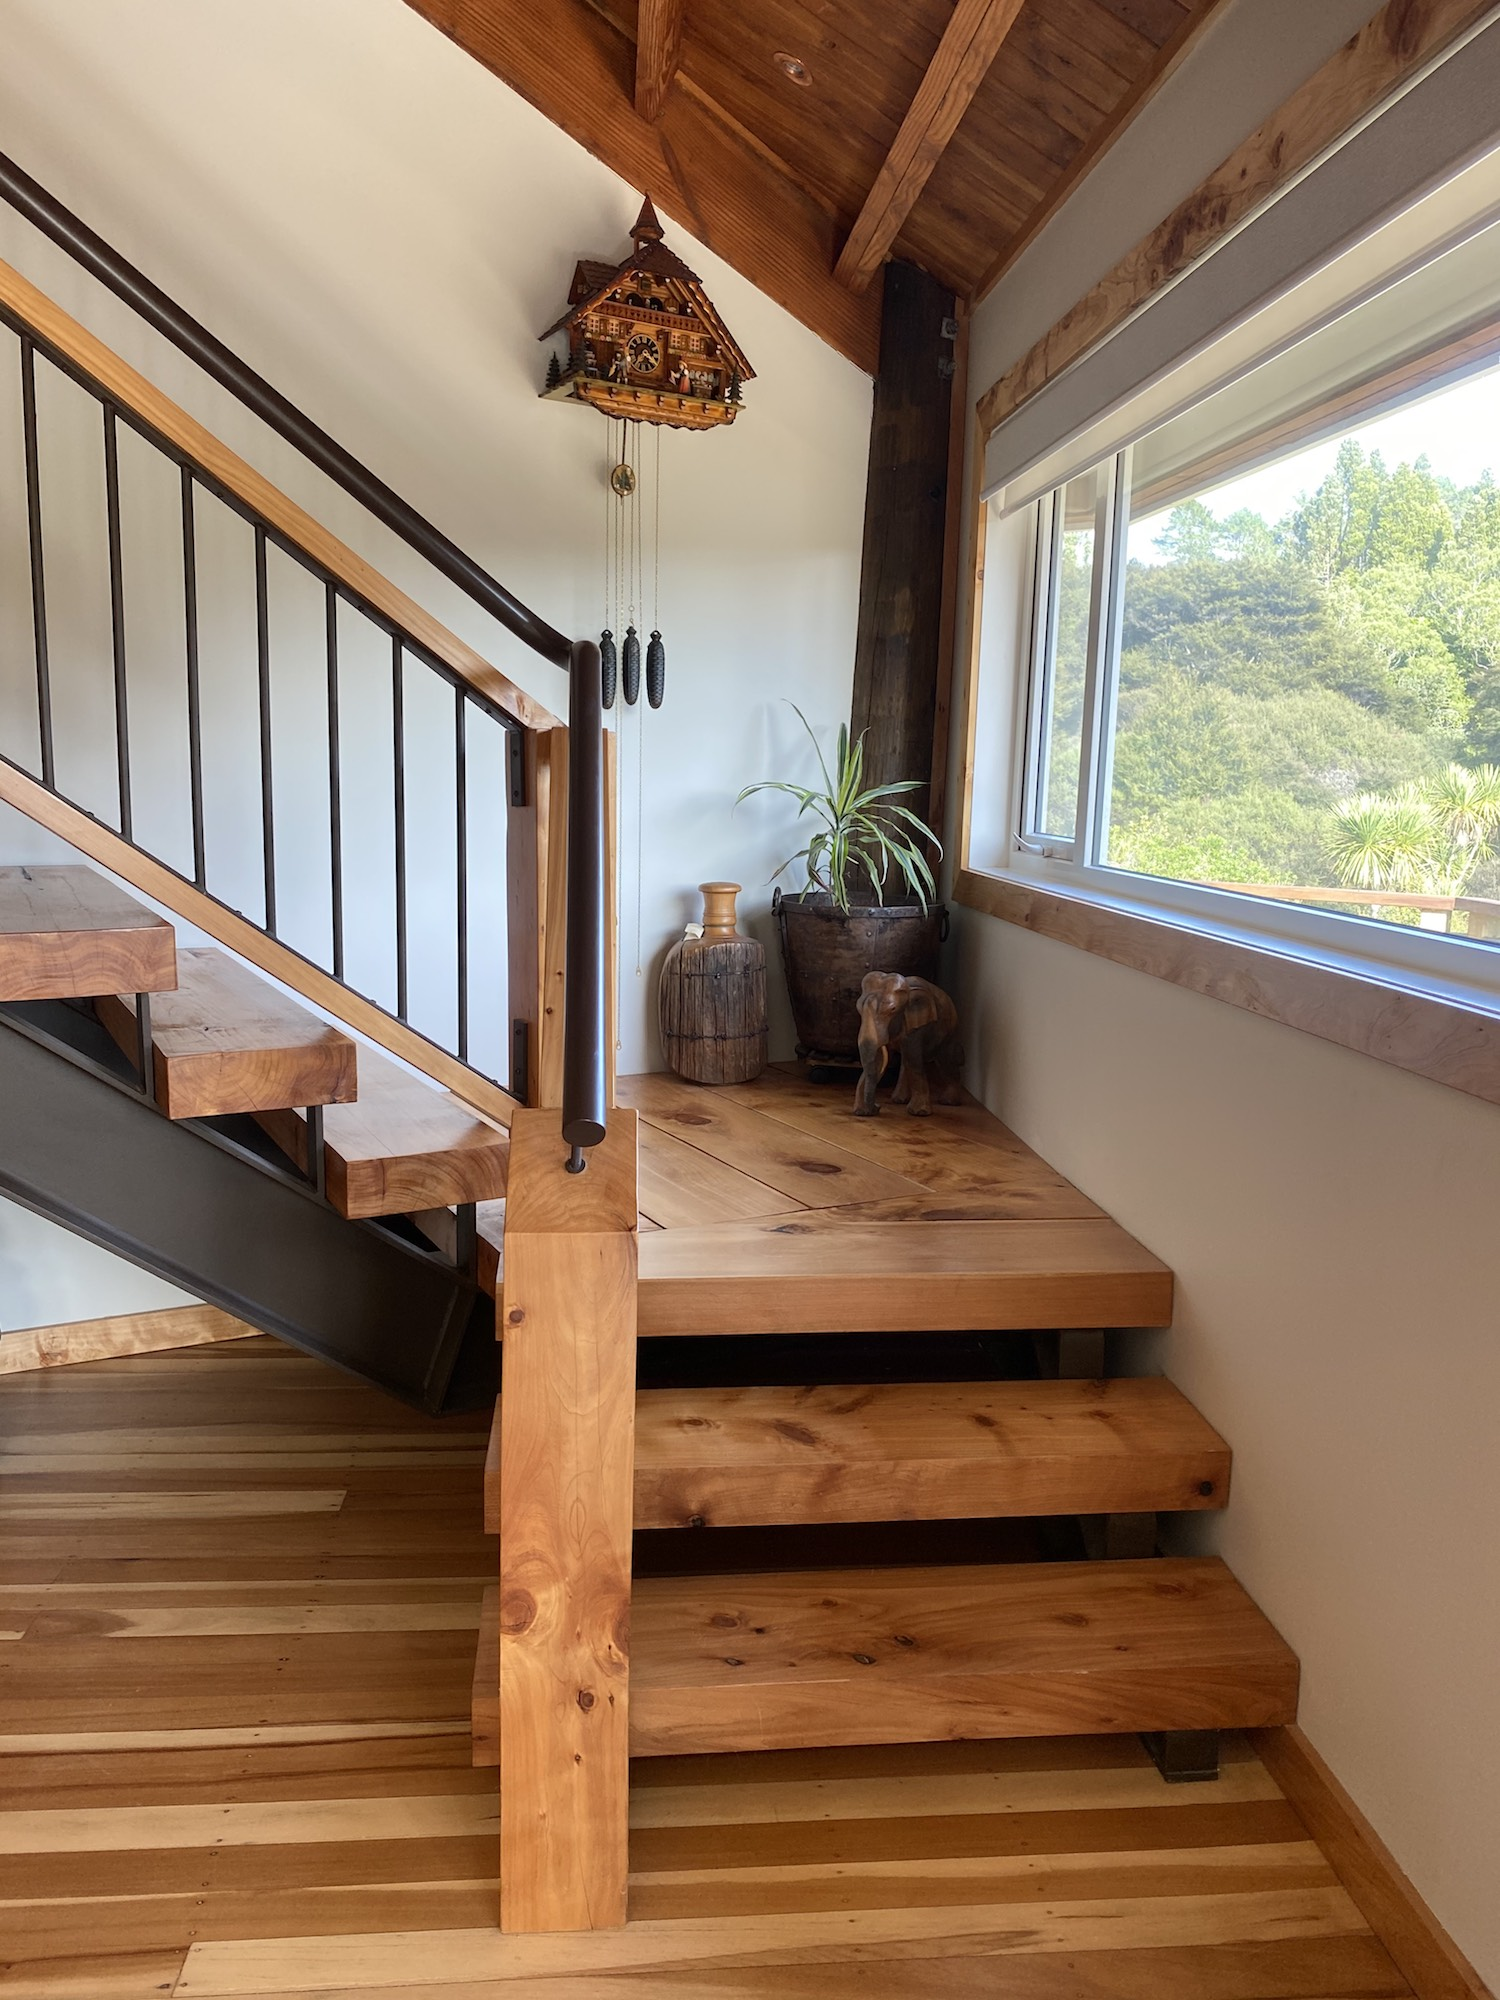 Metal railing and balustrade used on wooden stairs to give it an industrial look